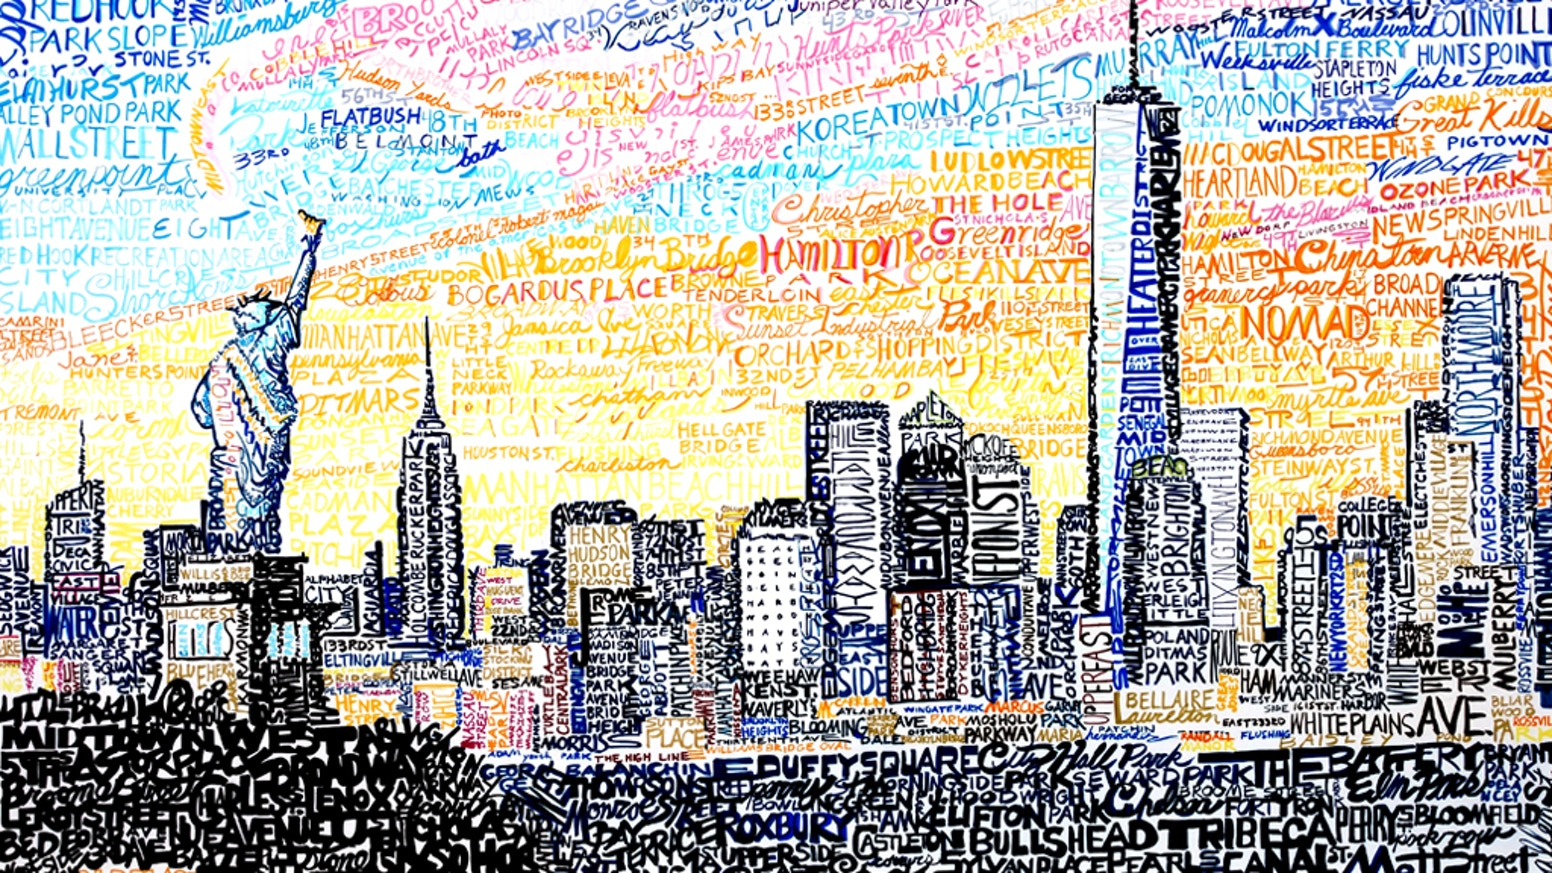 45f4d8e7acc Artist hand writes streets   neighborhoods to create unique cityscapes. Get  your prints of NYC